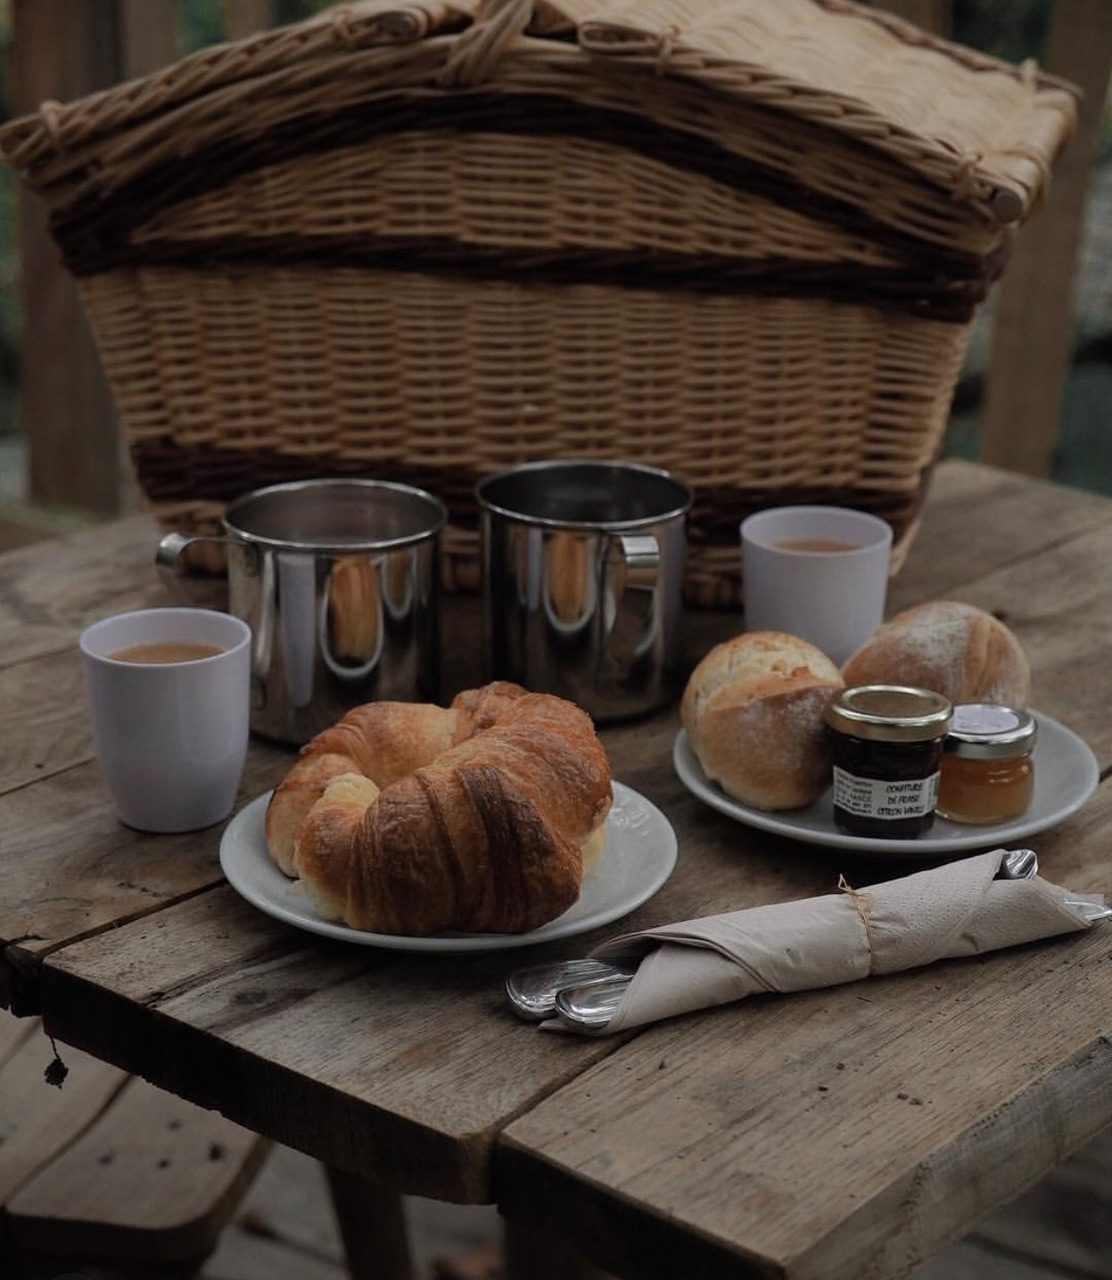 eat, jam, croissants and food